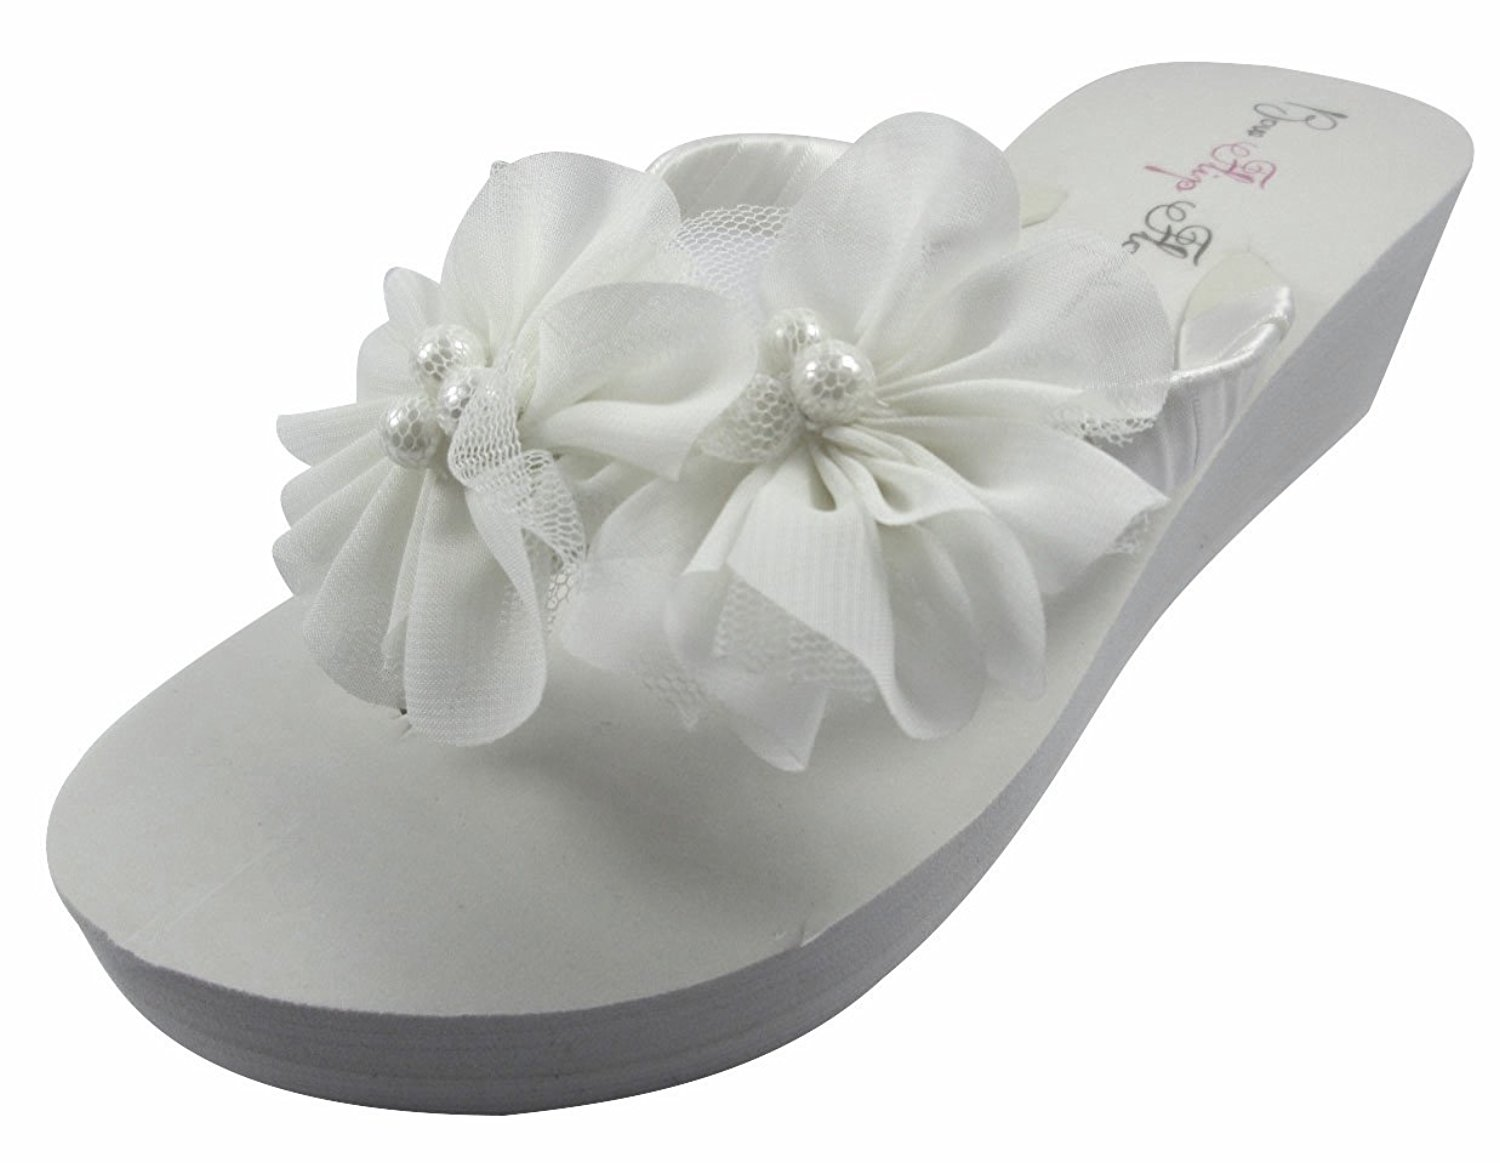 9ee58cfb5cbca Get Quotations · Bow Flip Flops Ivory Wedge Flip Flops Wedding Bridal White  Wedge Bride Platform Heel Flower Satin